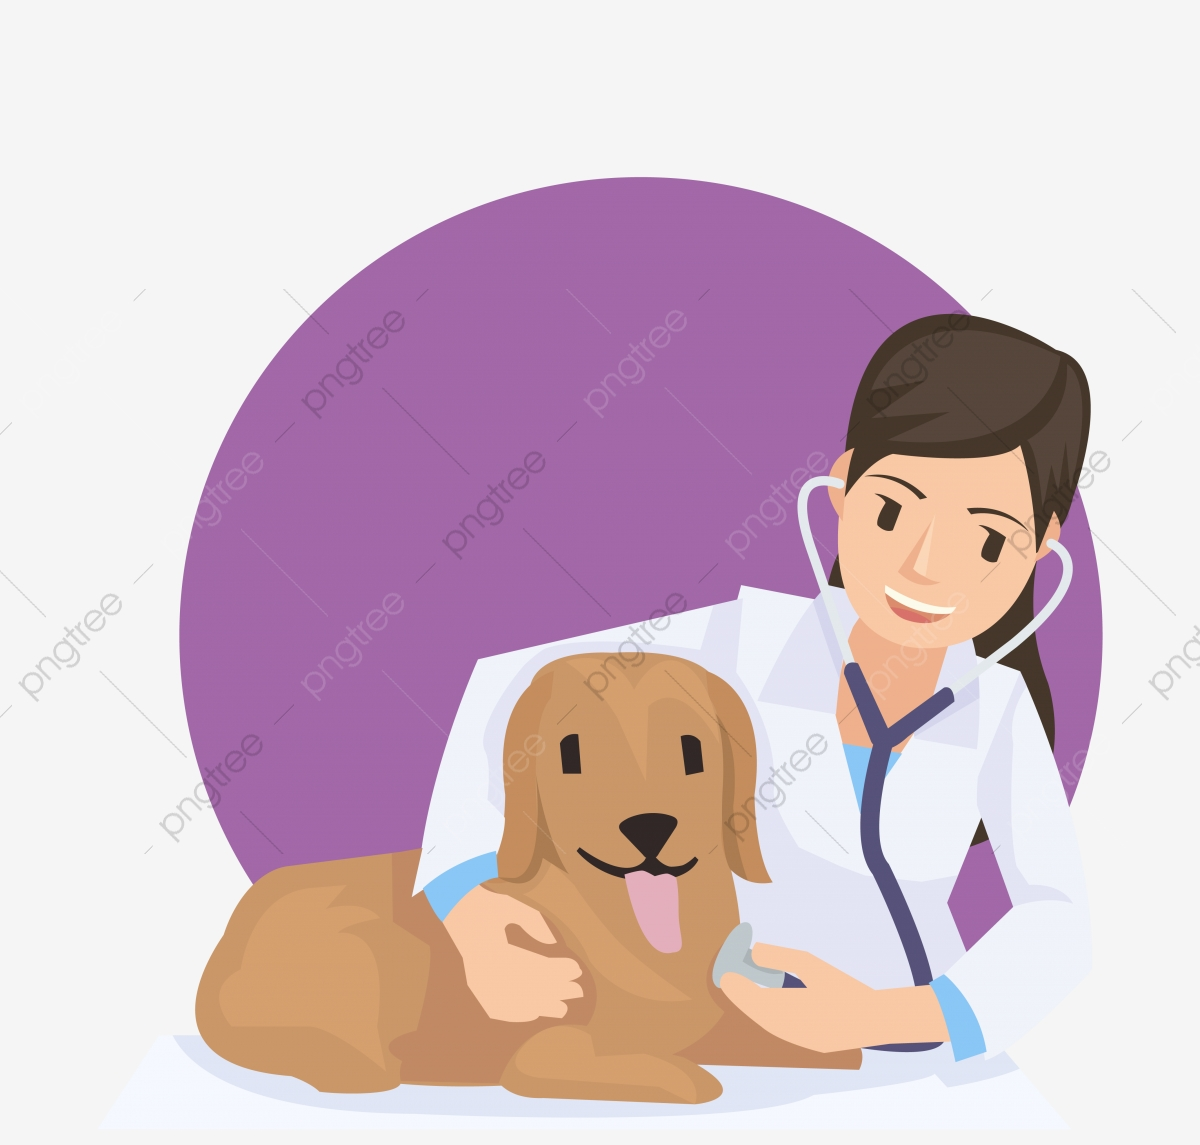 Sequencing Clip art - Caring for pet, dog by RamonaM Graphics | TpT